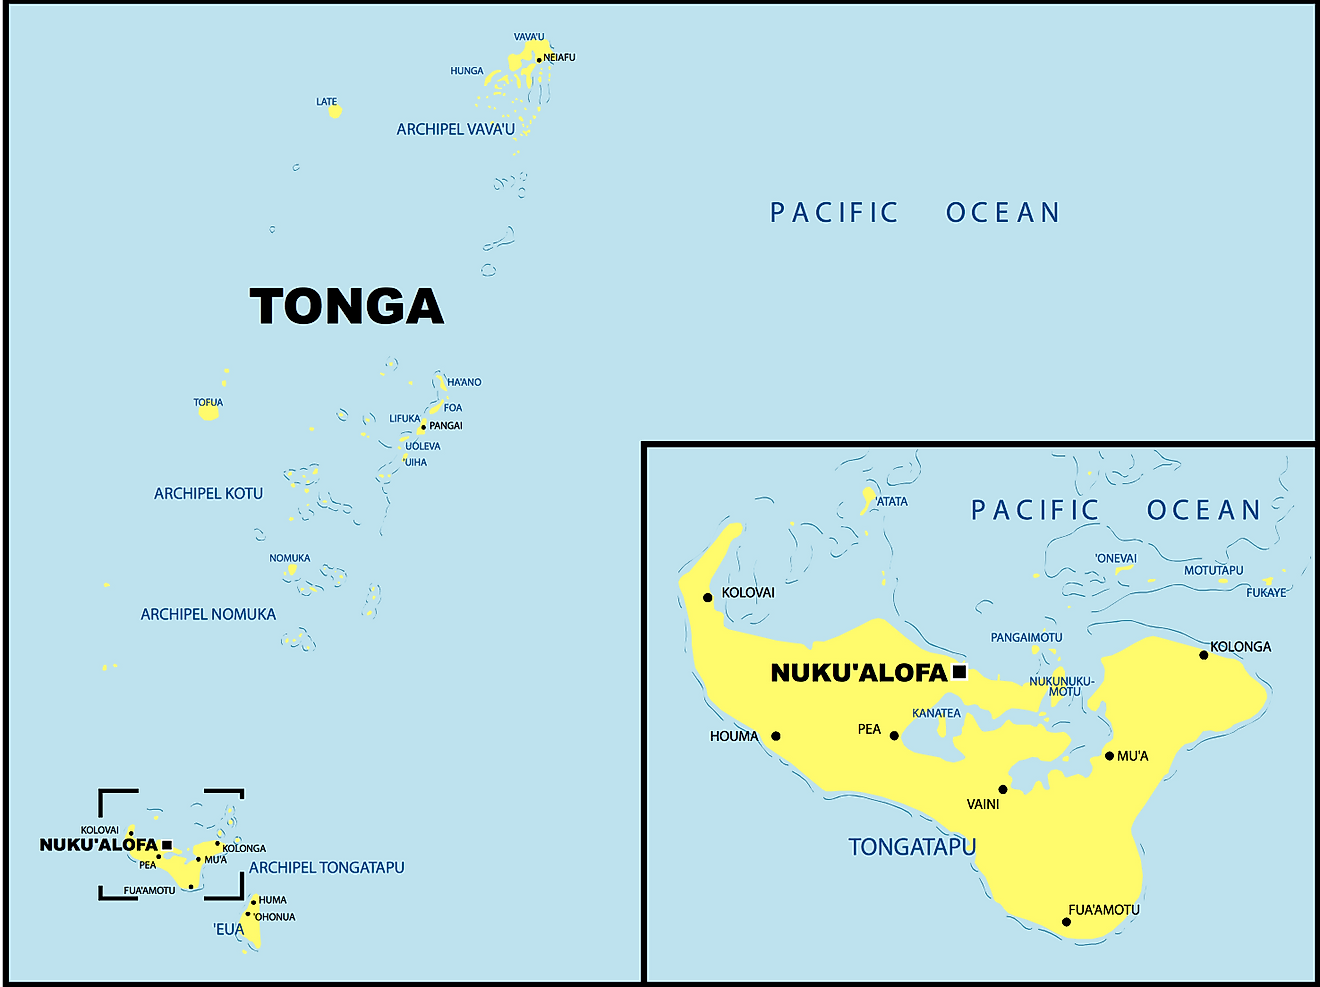 Political Map of Tonga showing its divisions and the capital city of Nukua'lofa